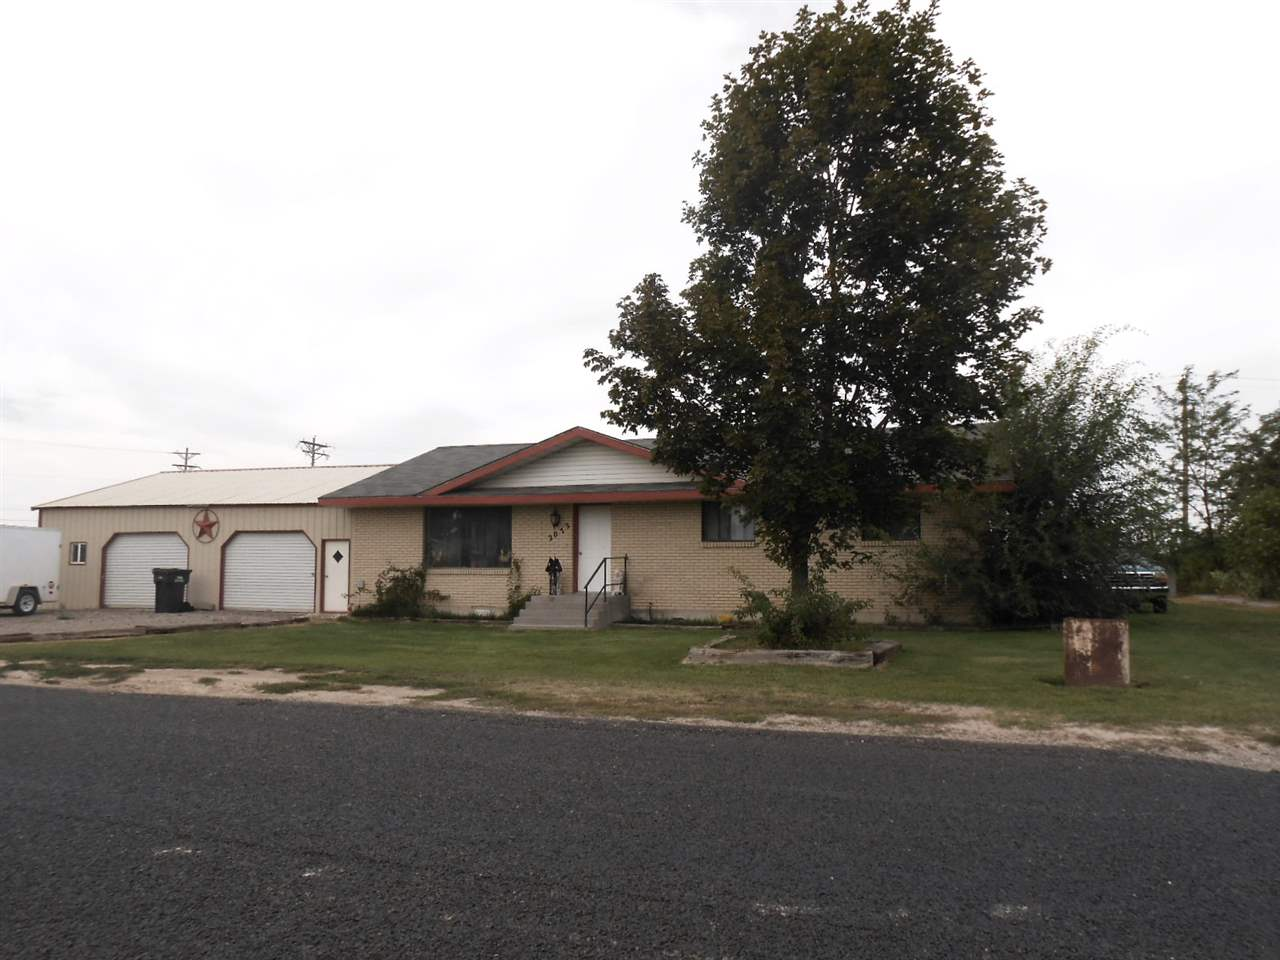 Single Family Home for Sale at 2072 Brockie Ave Heyburn, Idaho 83336